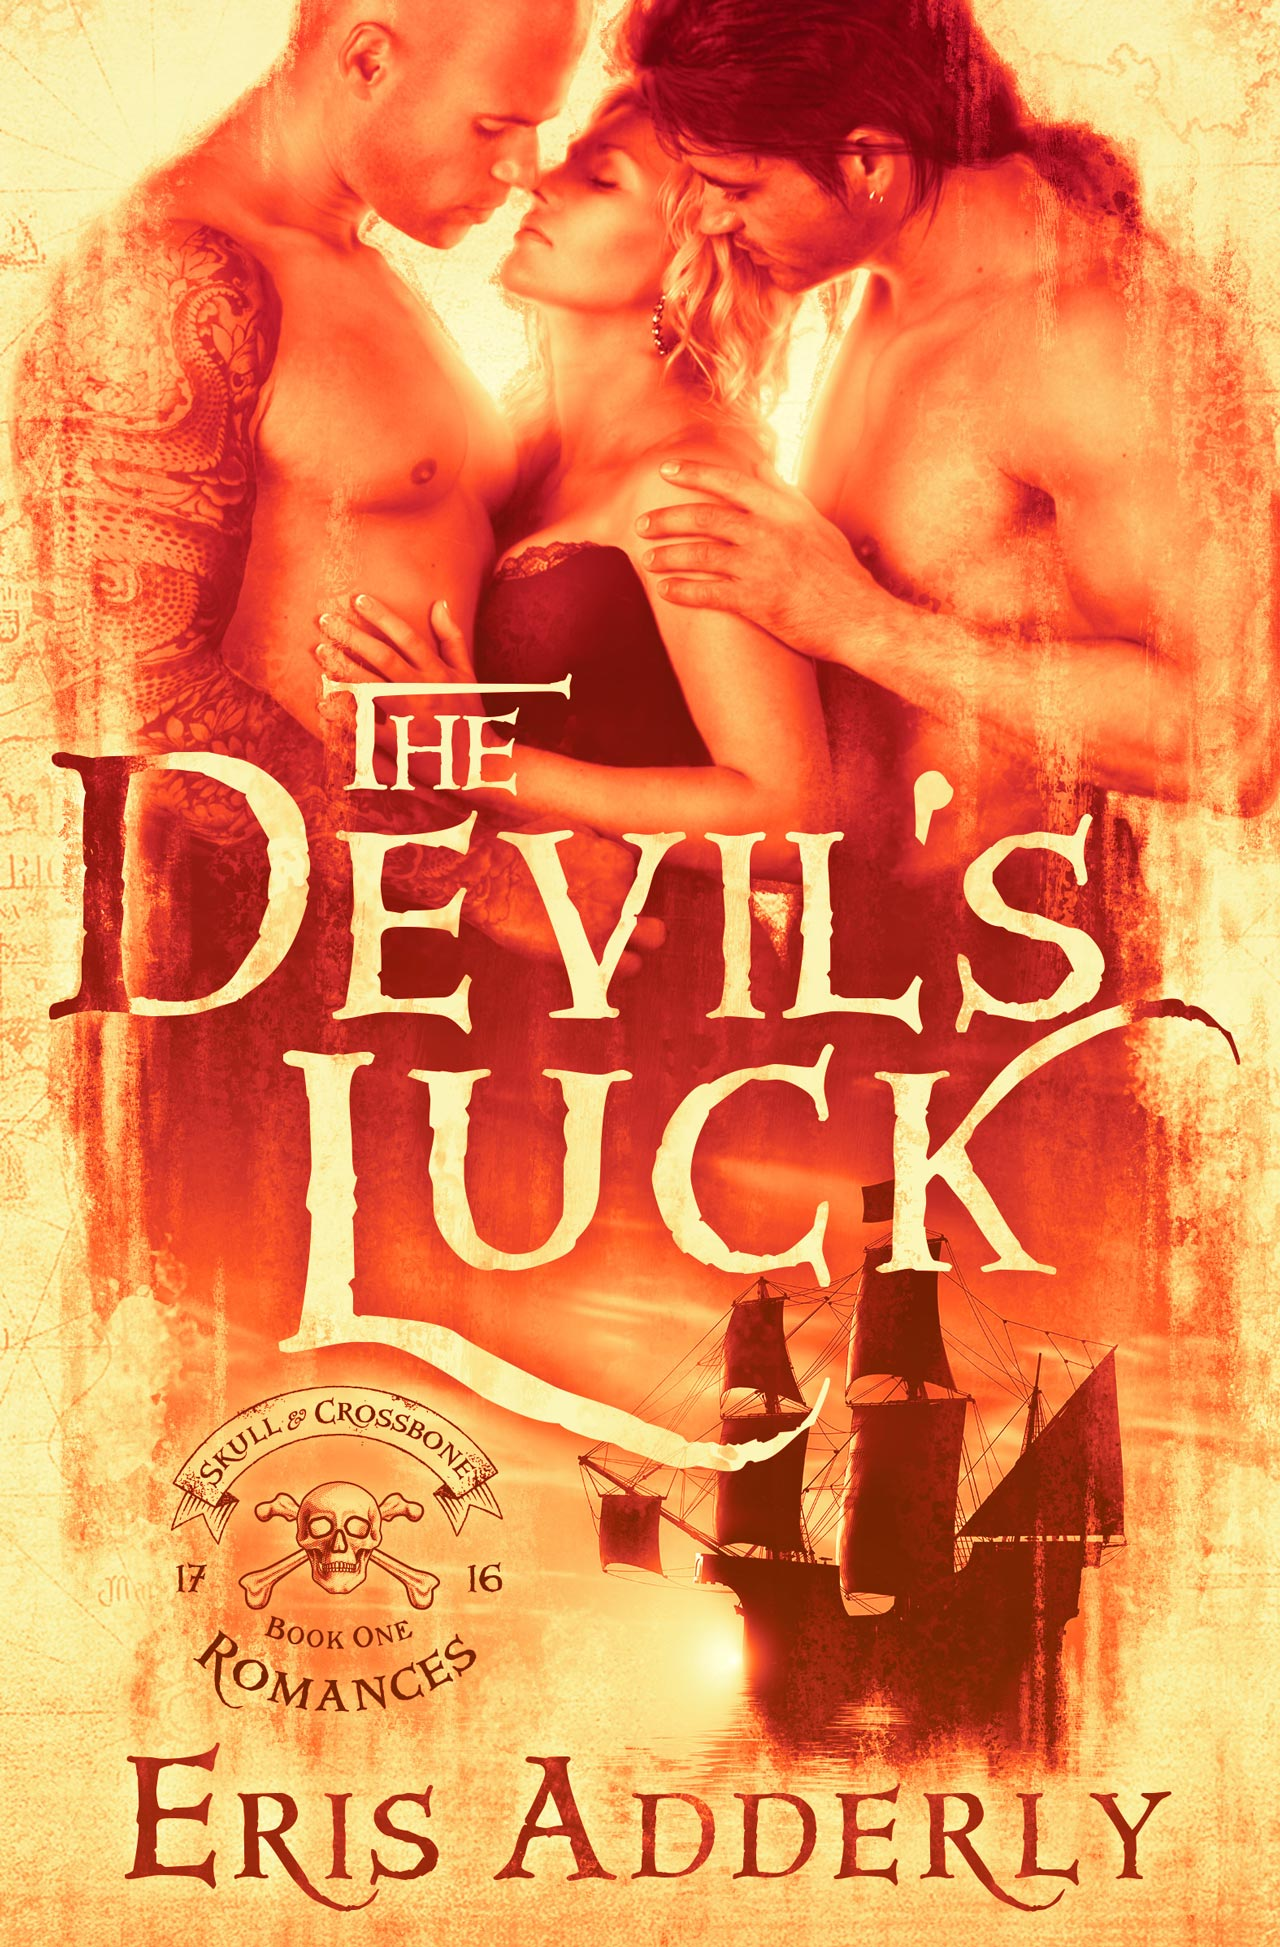 The Devil's Luck by Eris Adderly ebook cover